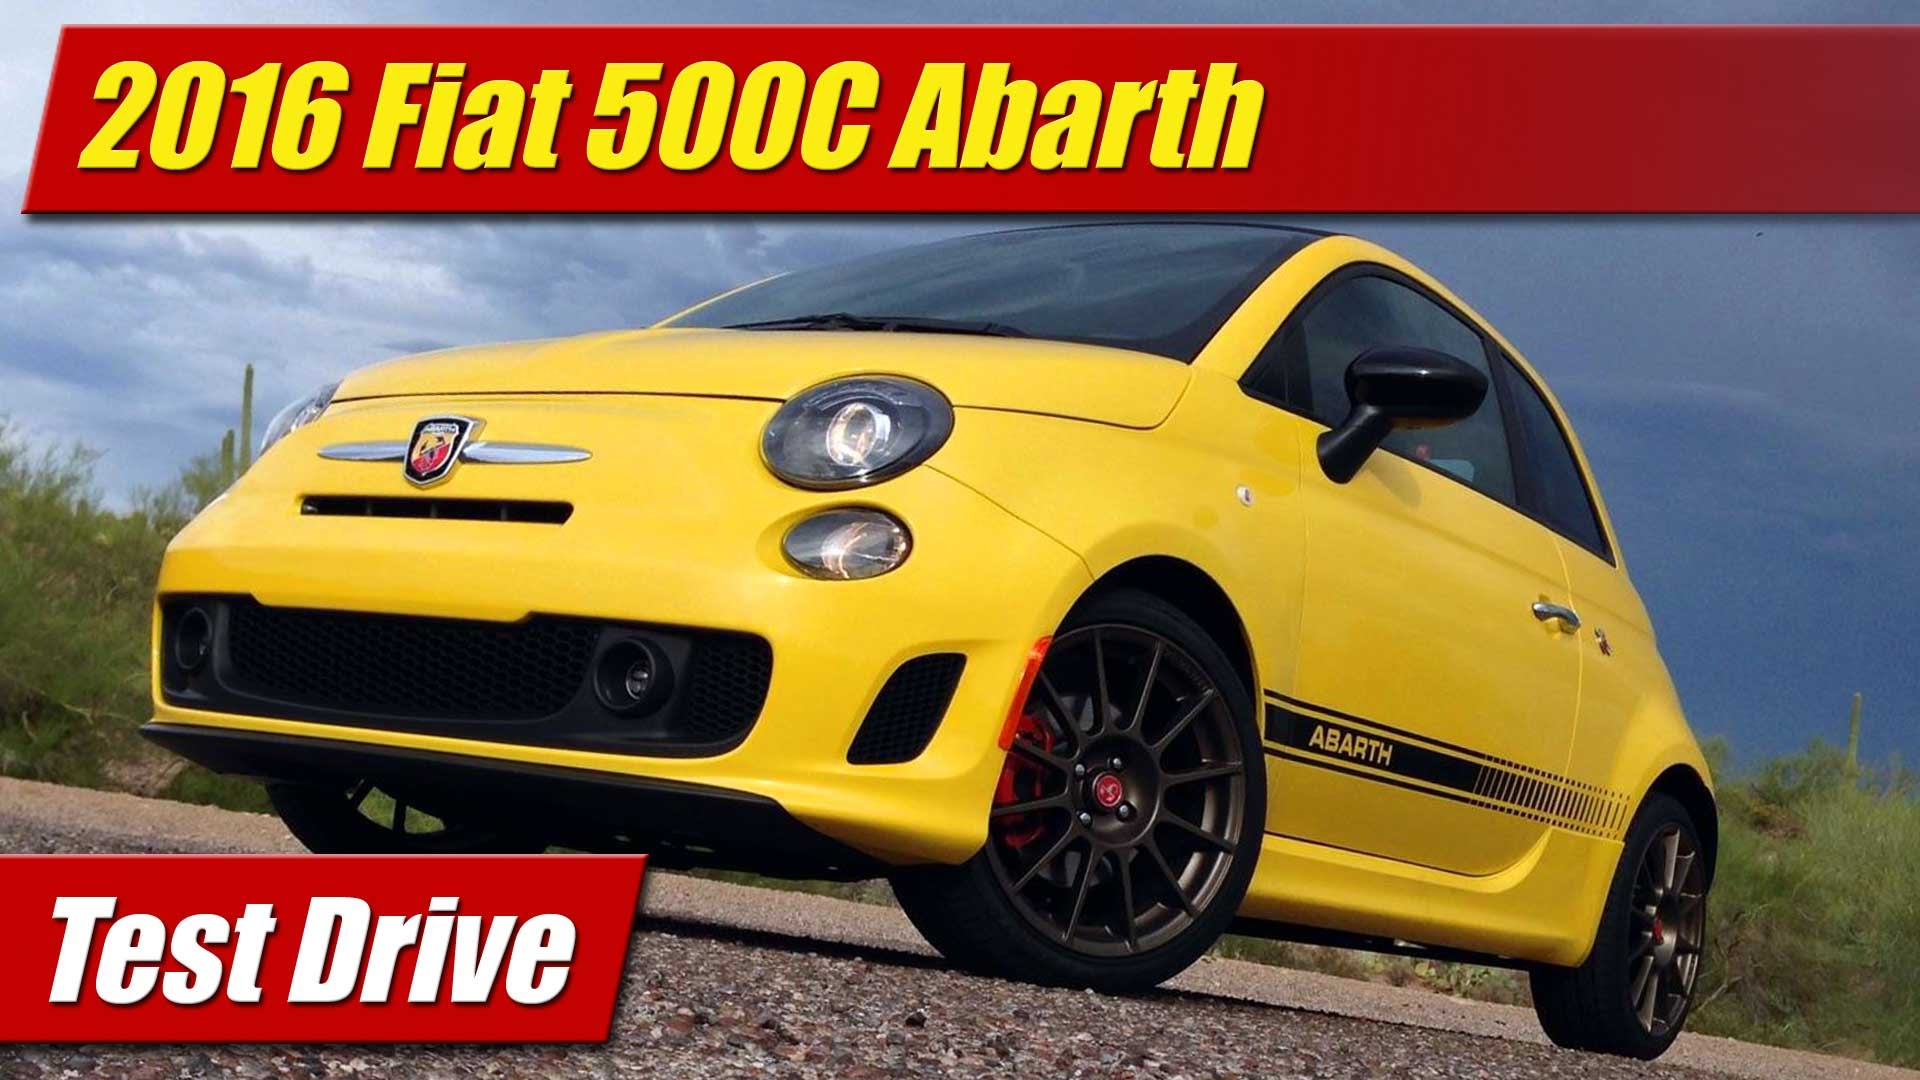 test drive 2016 fiat 500c abarth testdriven tv. Black Bedroom Furniture Sets. Home Design Ideas